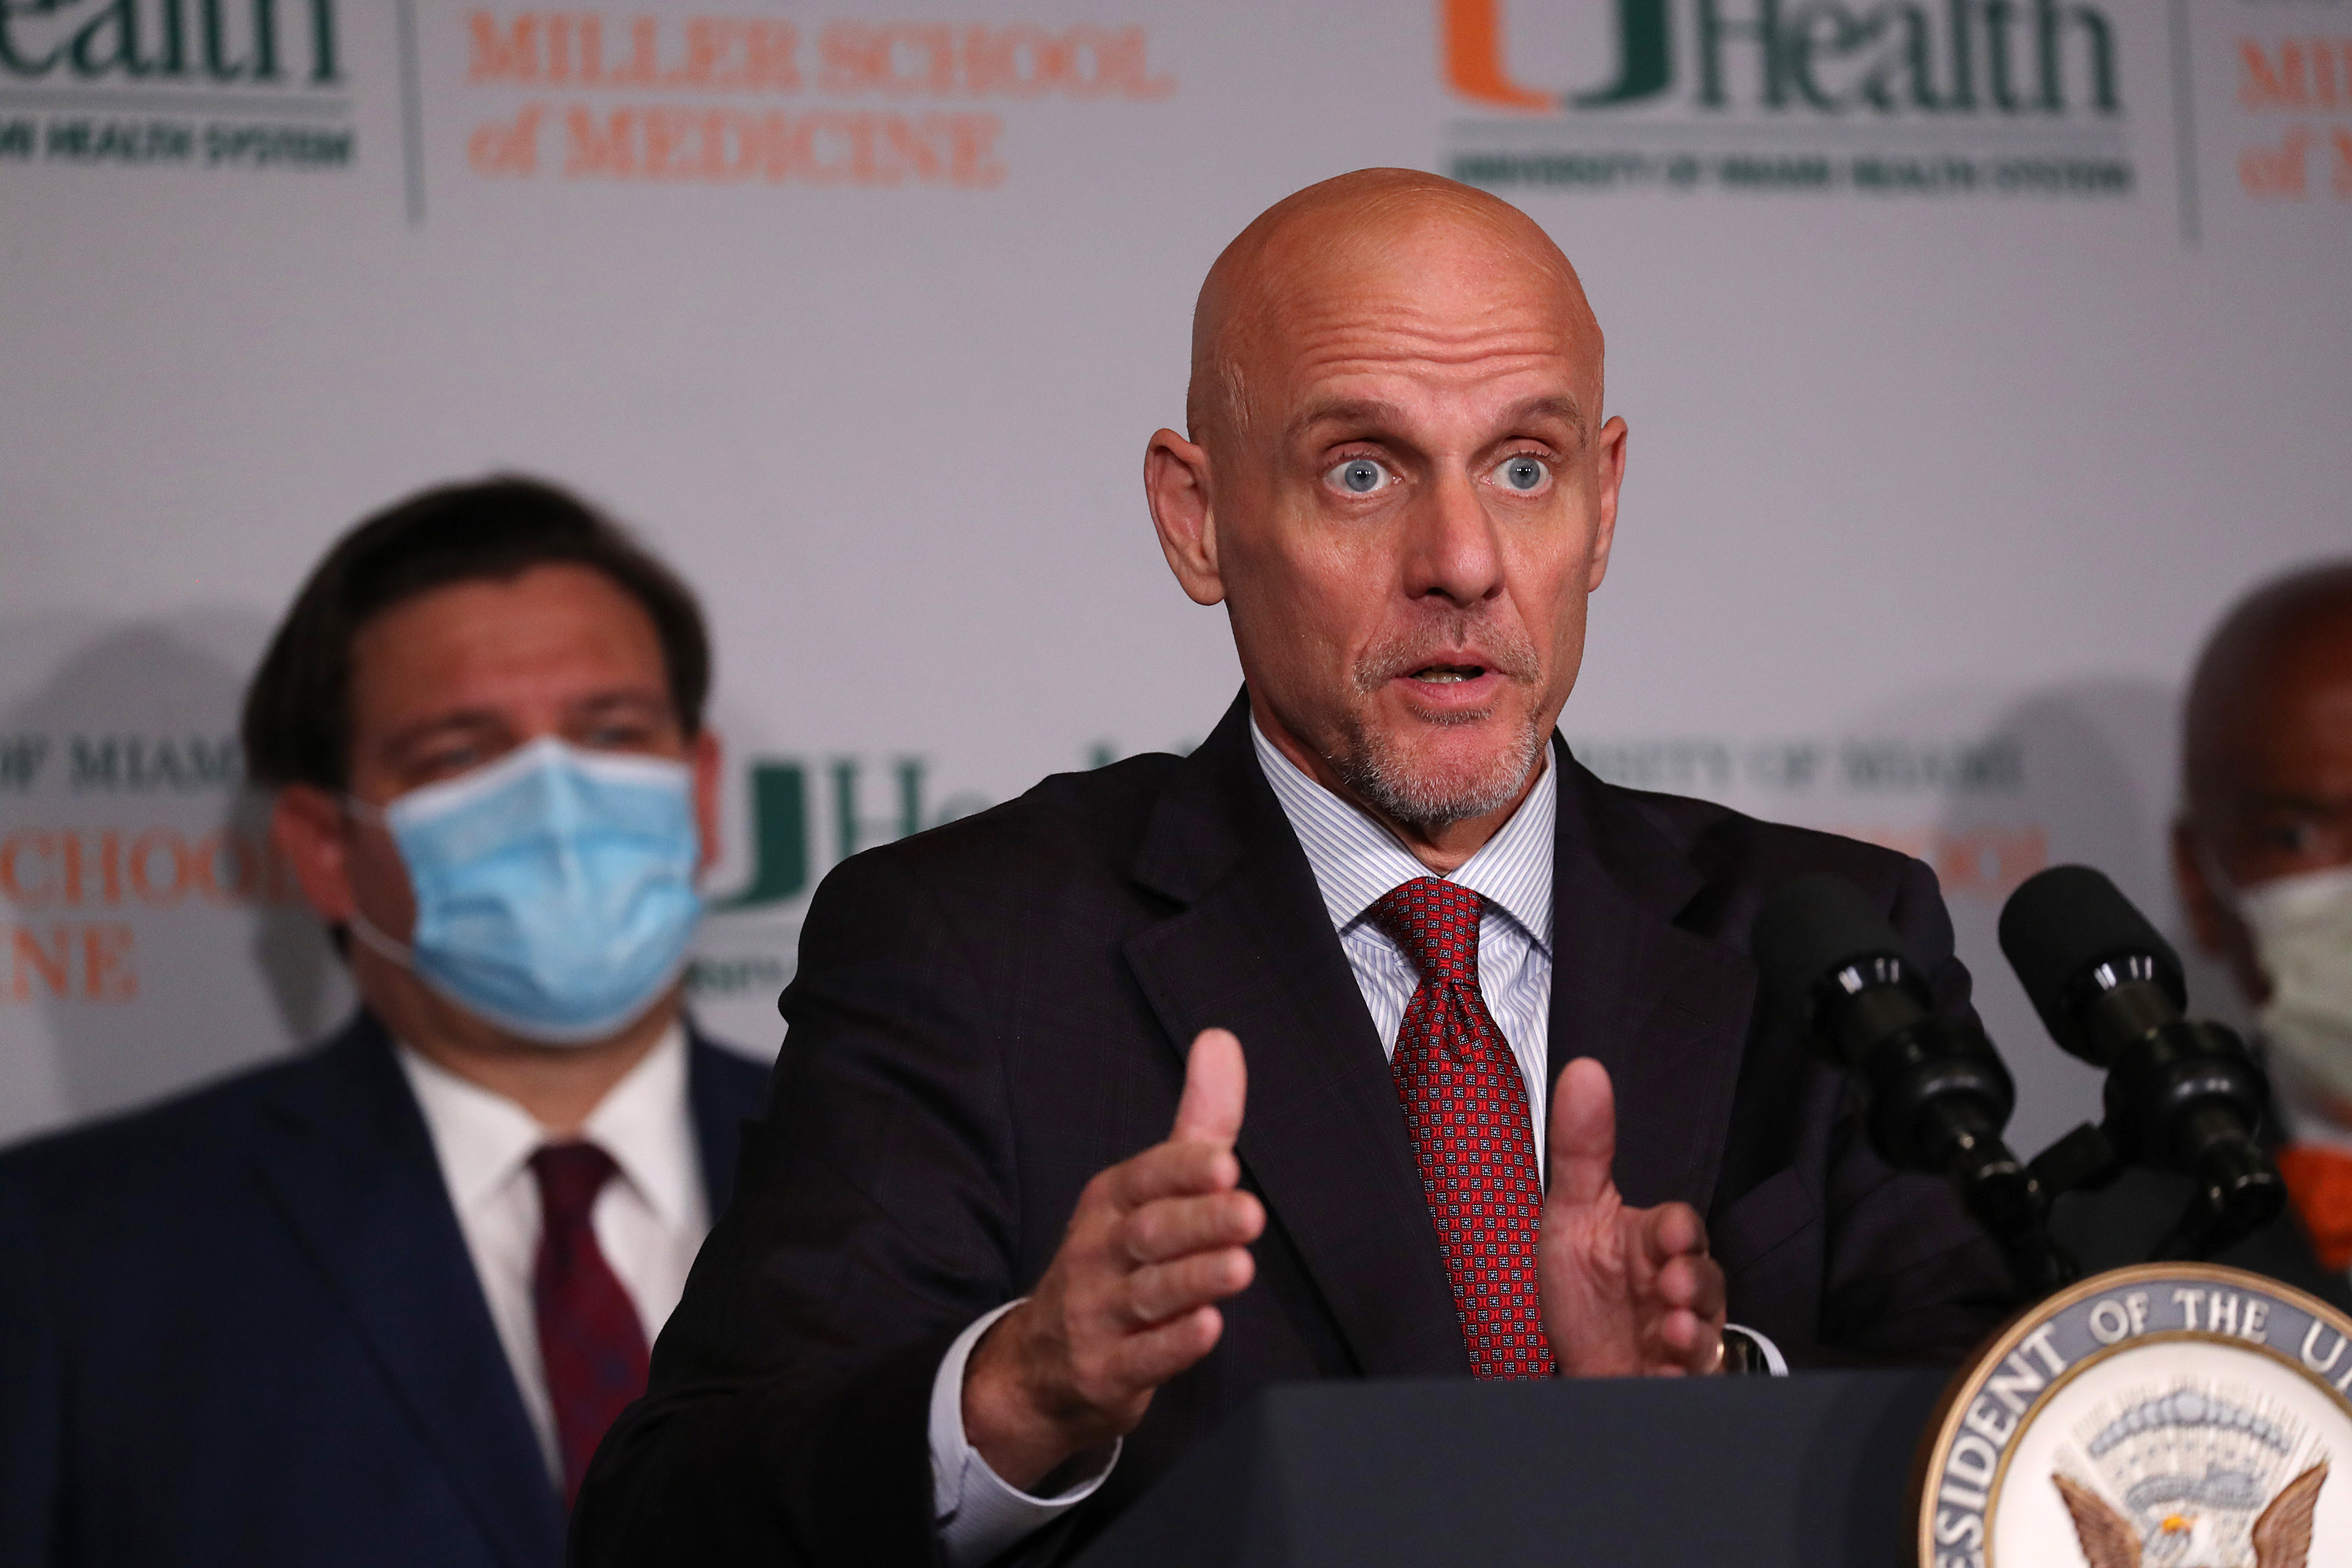 FDA Commissioner Dr. Stephen Hahn speaks during a press conference at the University of Miami Miller School of Medicine on July 27 in Miami.